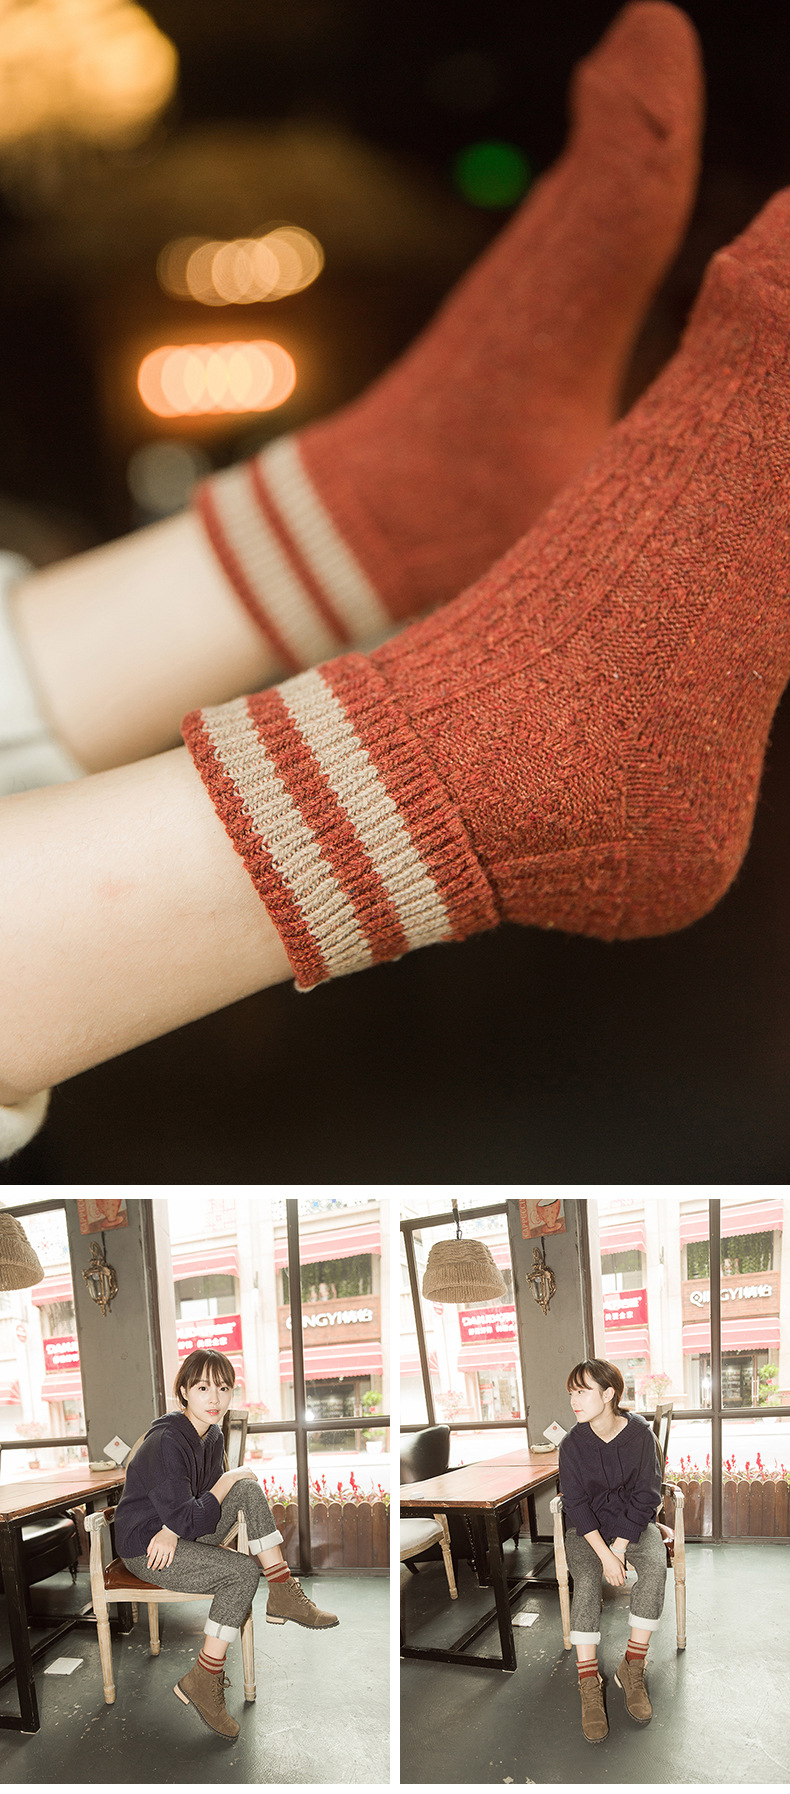 HTB1Yq6PaozrK1RjSspmq6AOdFXal - 5 Colors New Fashion Retro Wool Women Socks Autumn Winter Wamer Cotton Girl Socks Female Japanese Tube Sock Students Hosiery